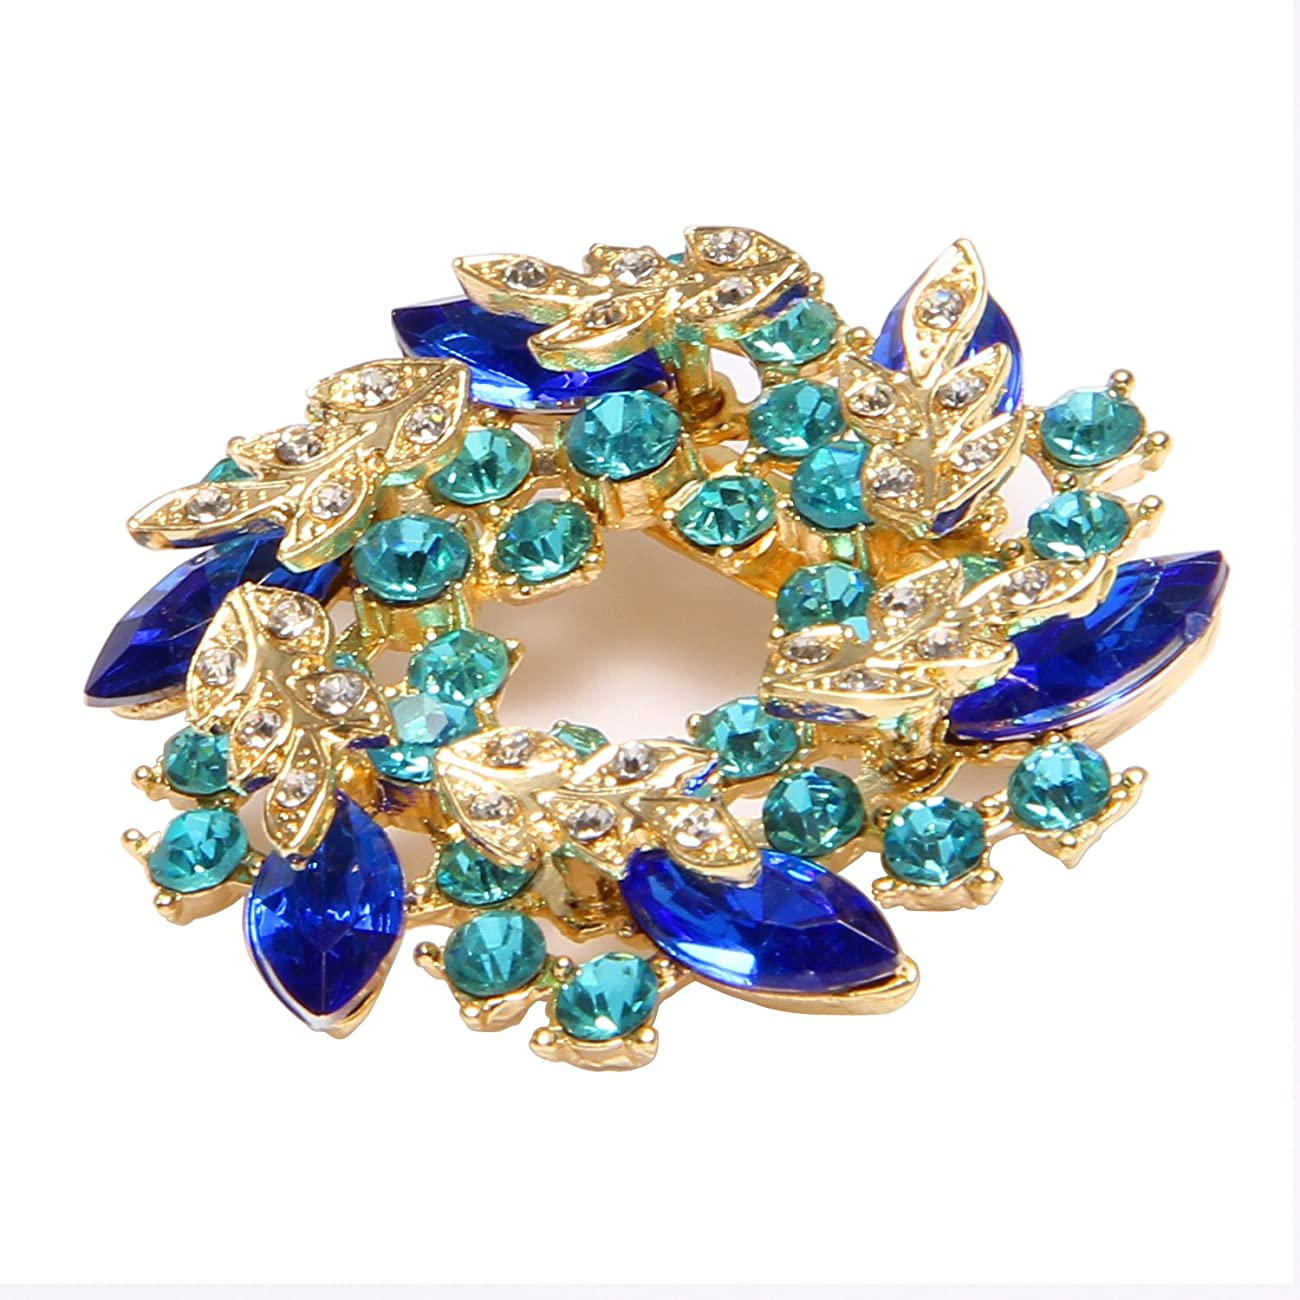 Valdler Women 's Brooch Pin With Fashion Jewelry Fancy Vintage Rhinestone Bling Crystal Bauhinia Flower 1